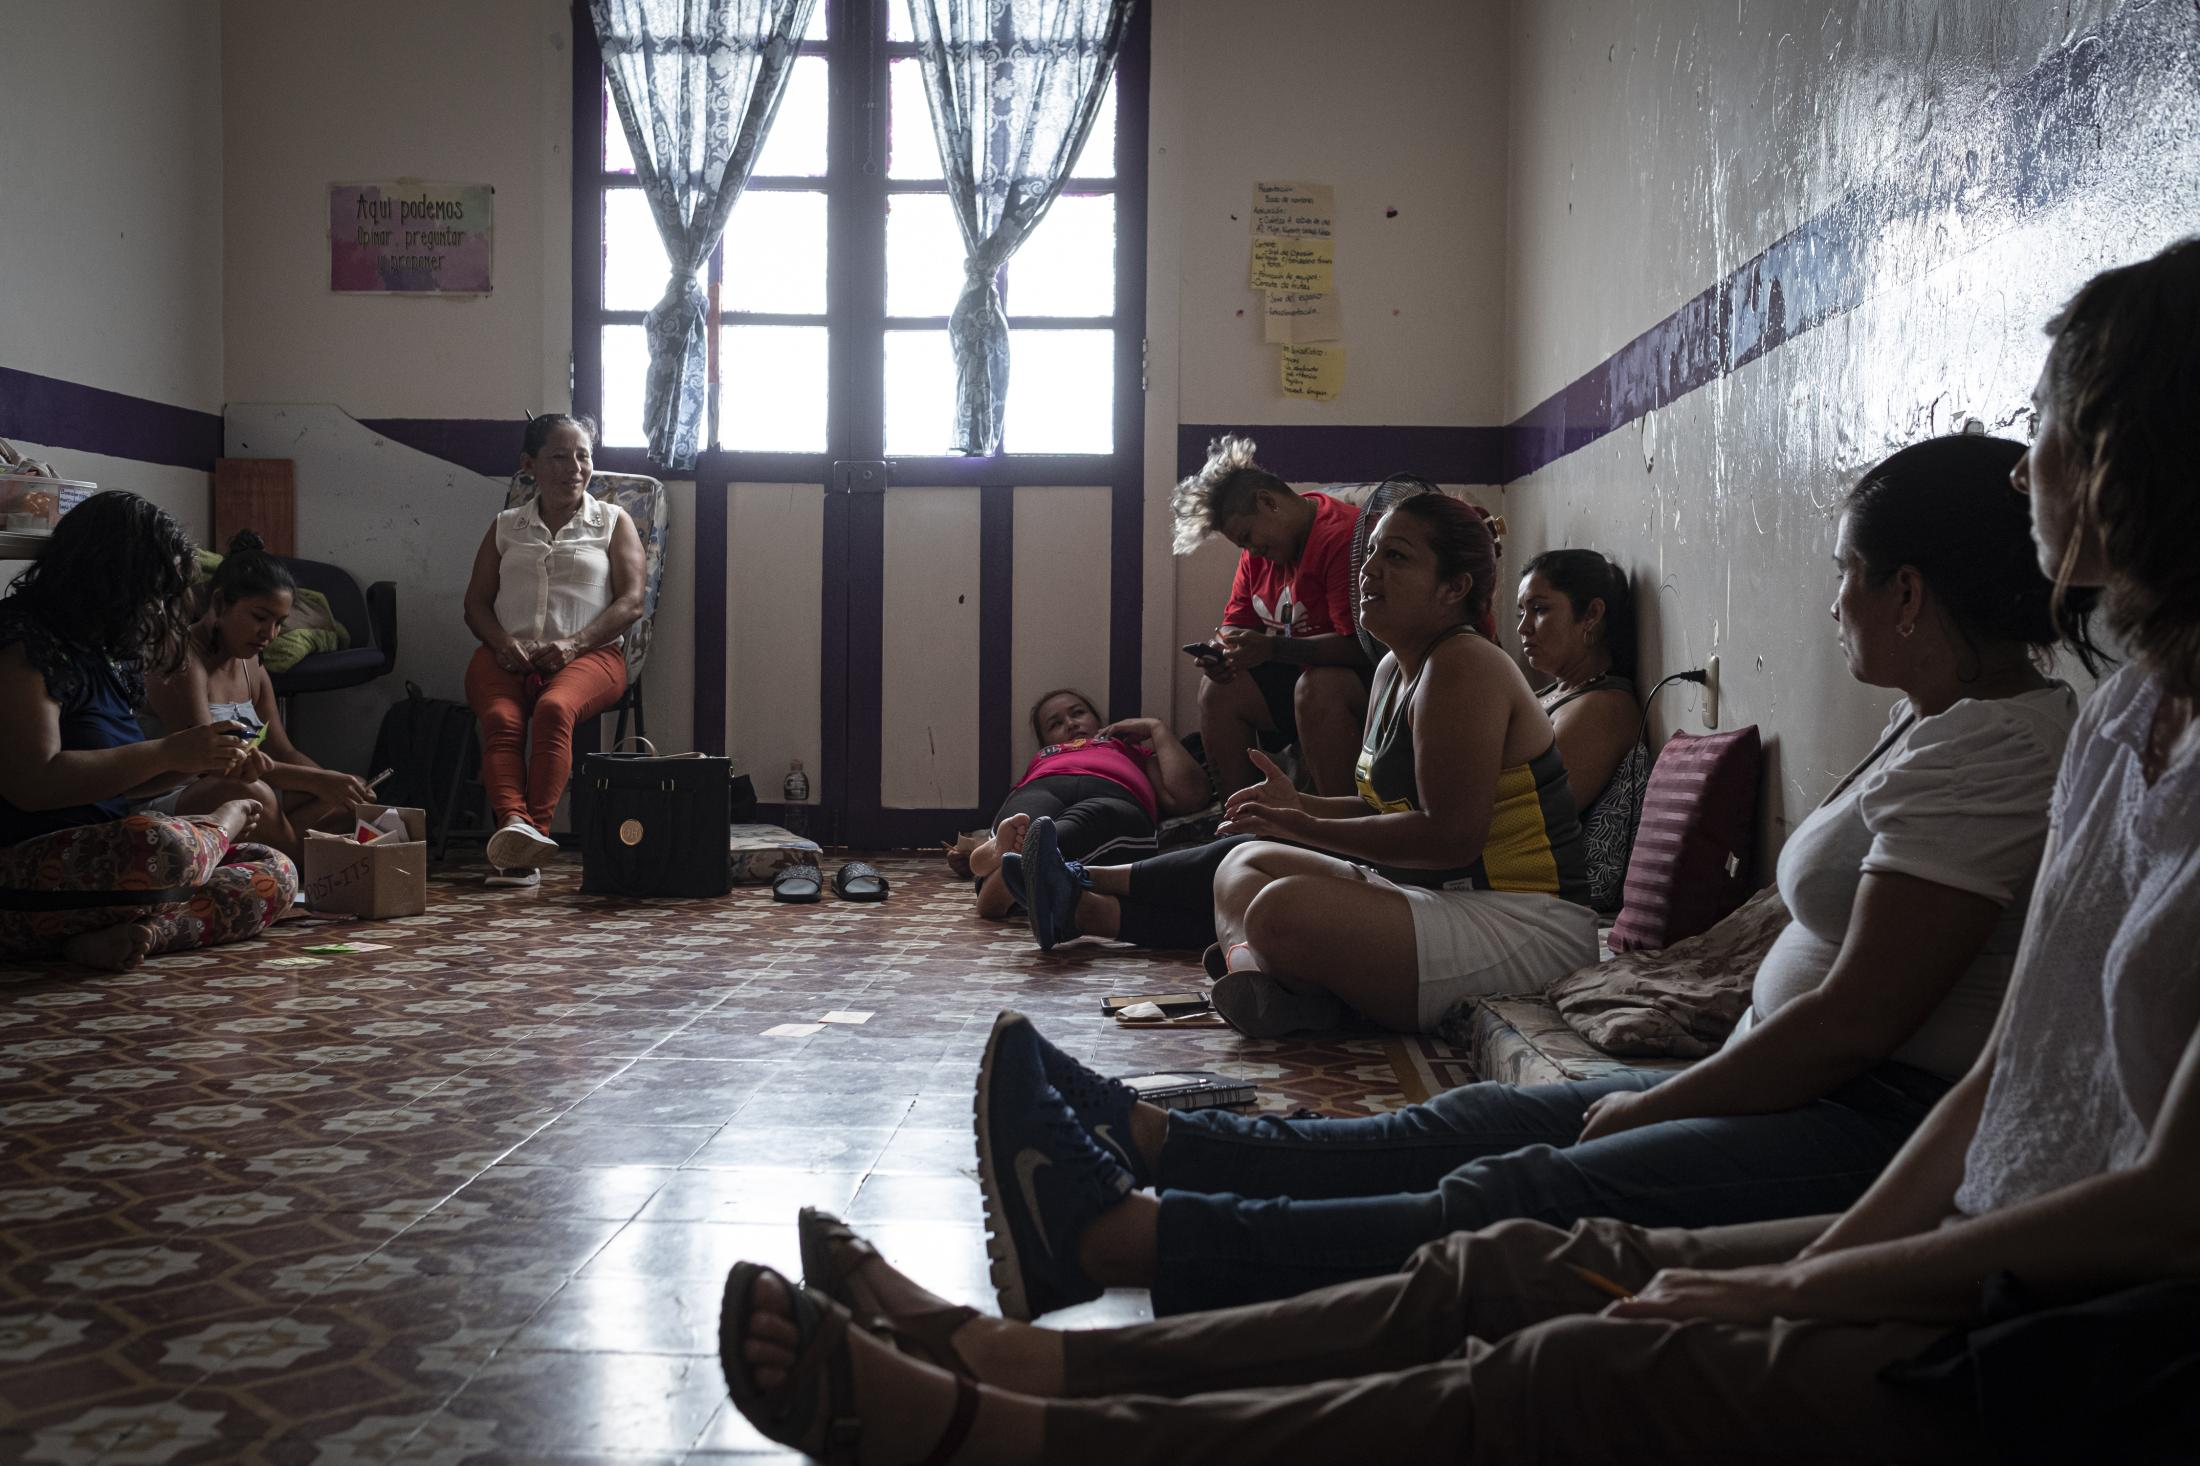 Art and Documentary Photography - Loading LGBTQ_MIGRANTS.2-8.jpg